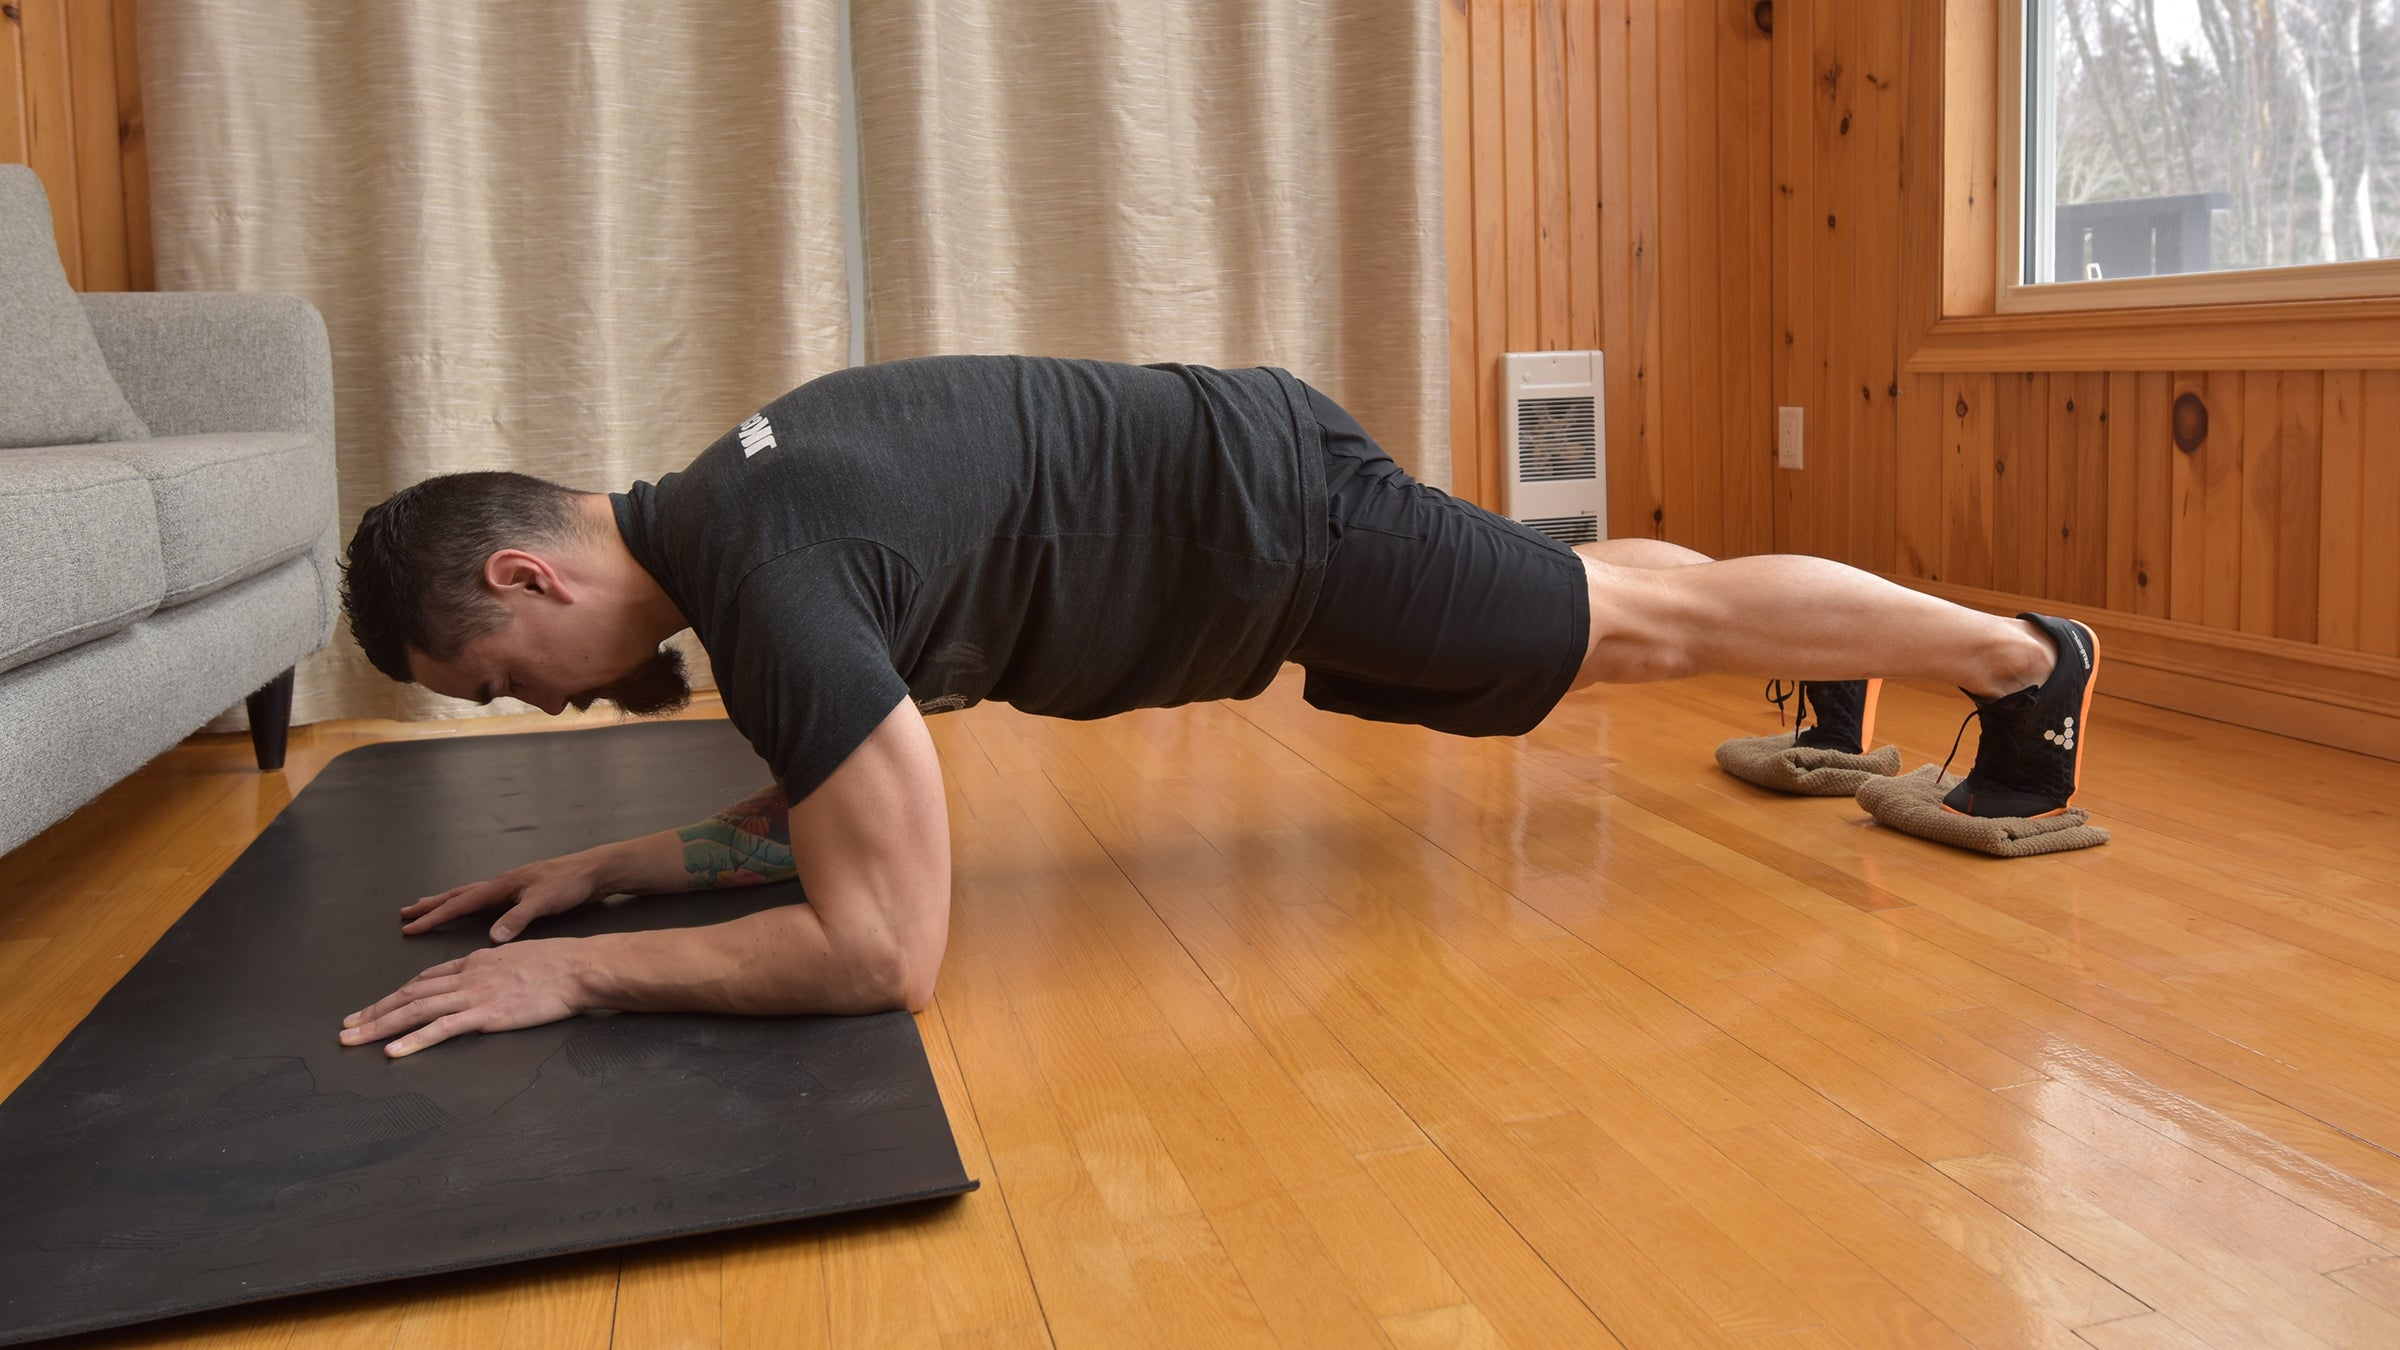 saw plank ab exercise